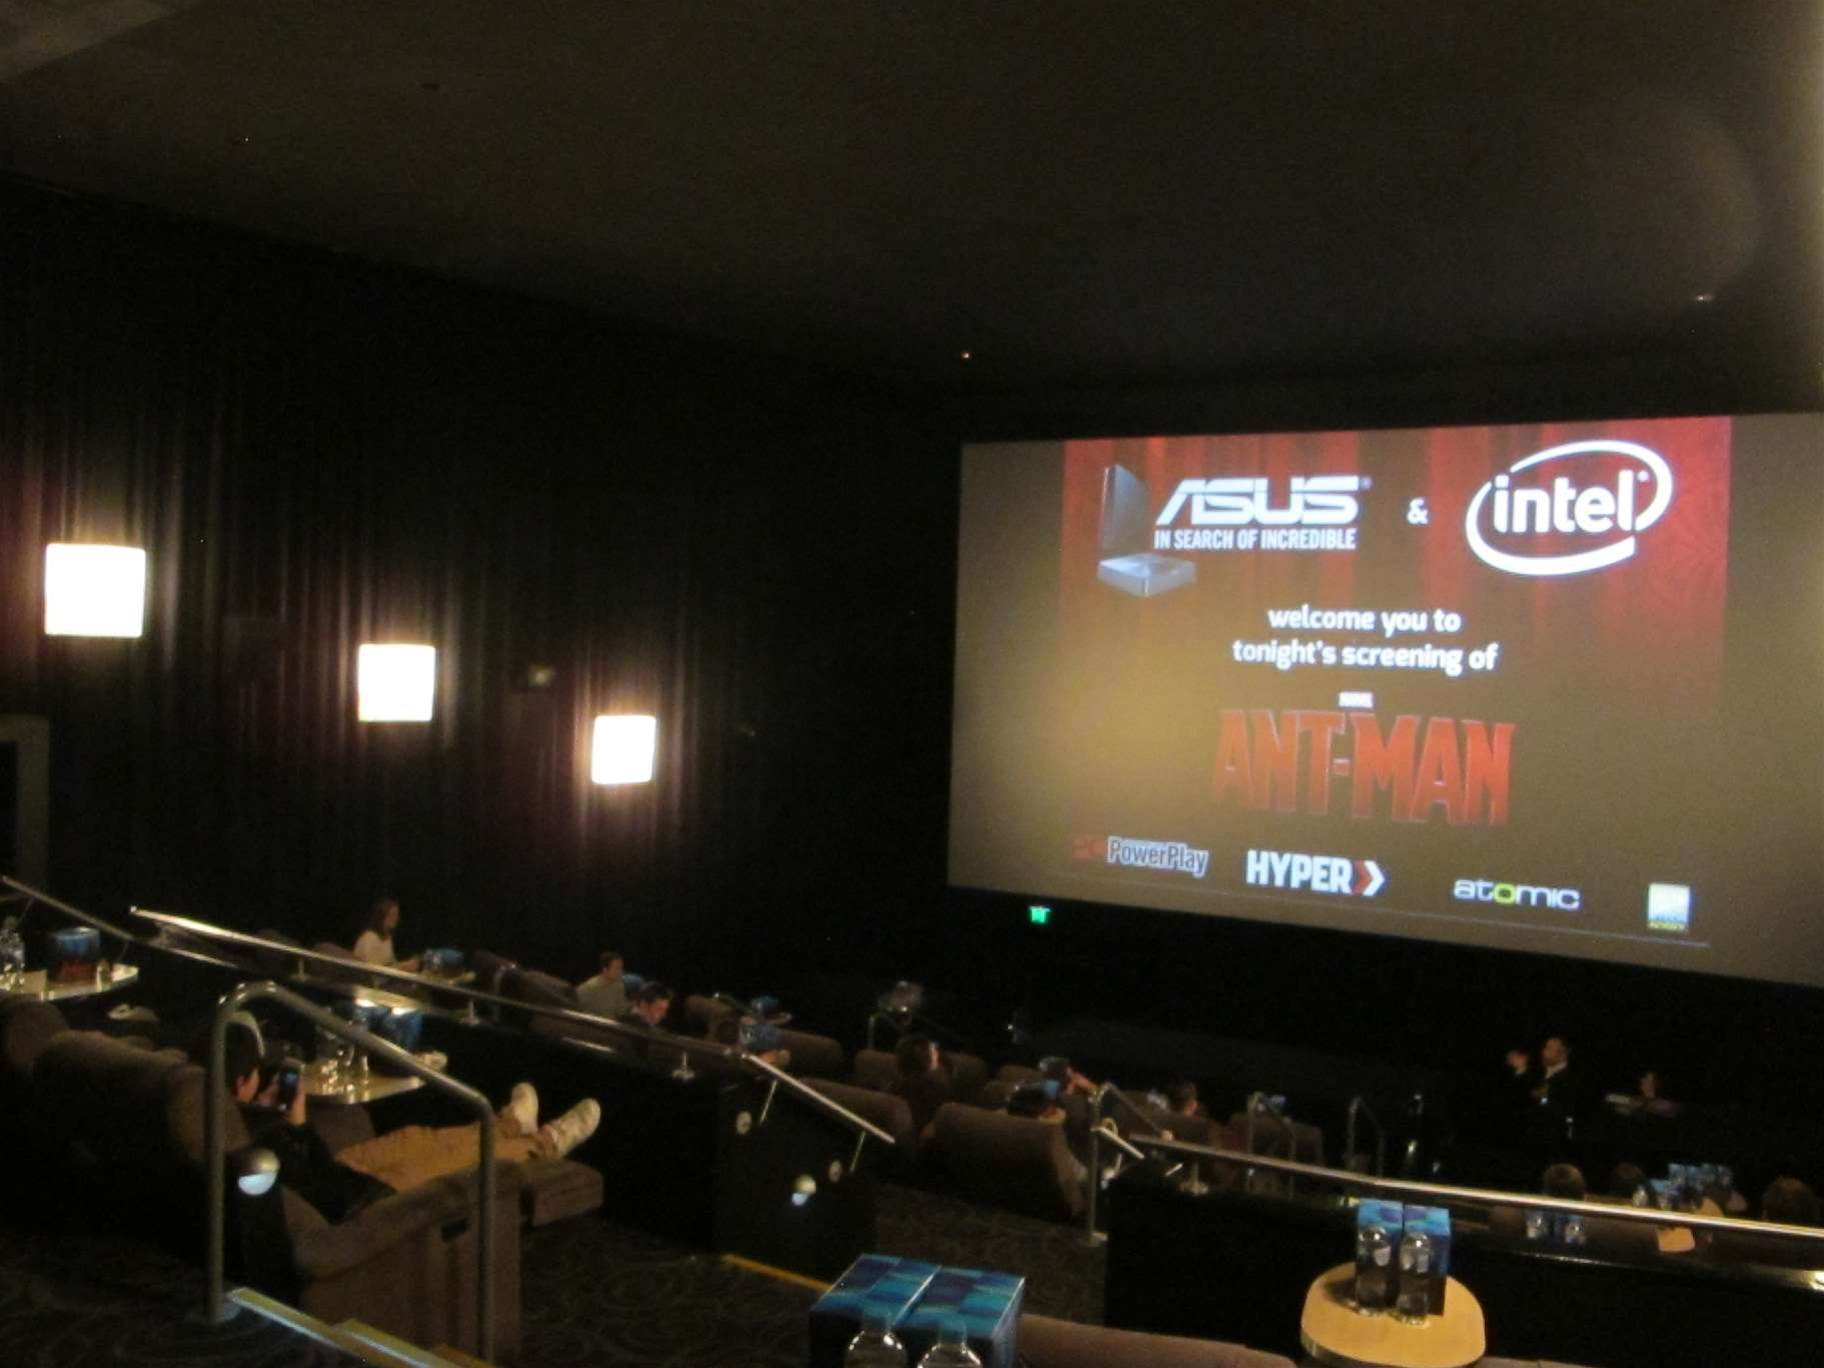 ASUS shows off new gear at Ant Man screening